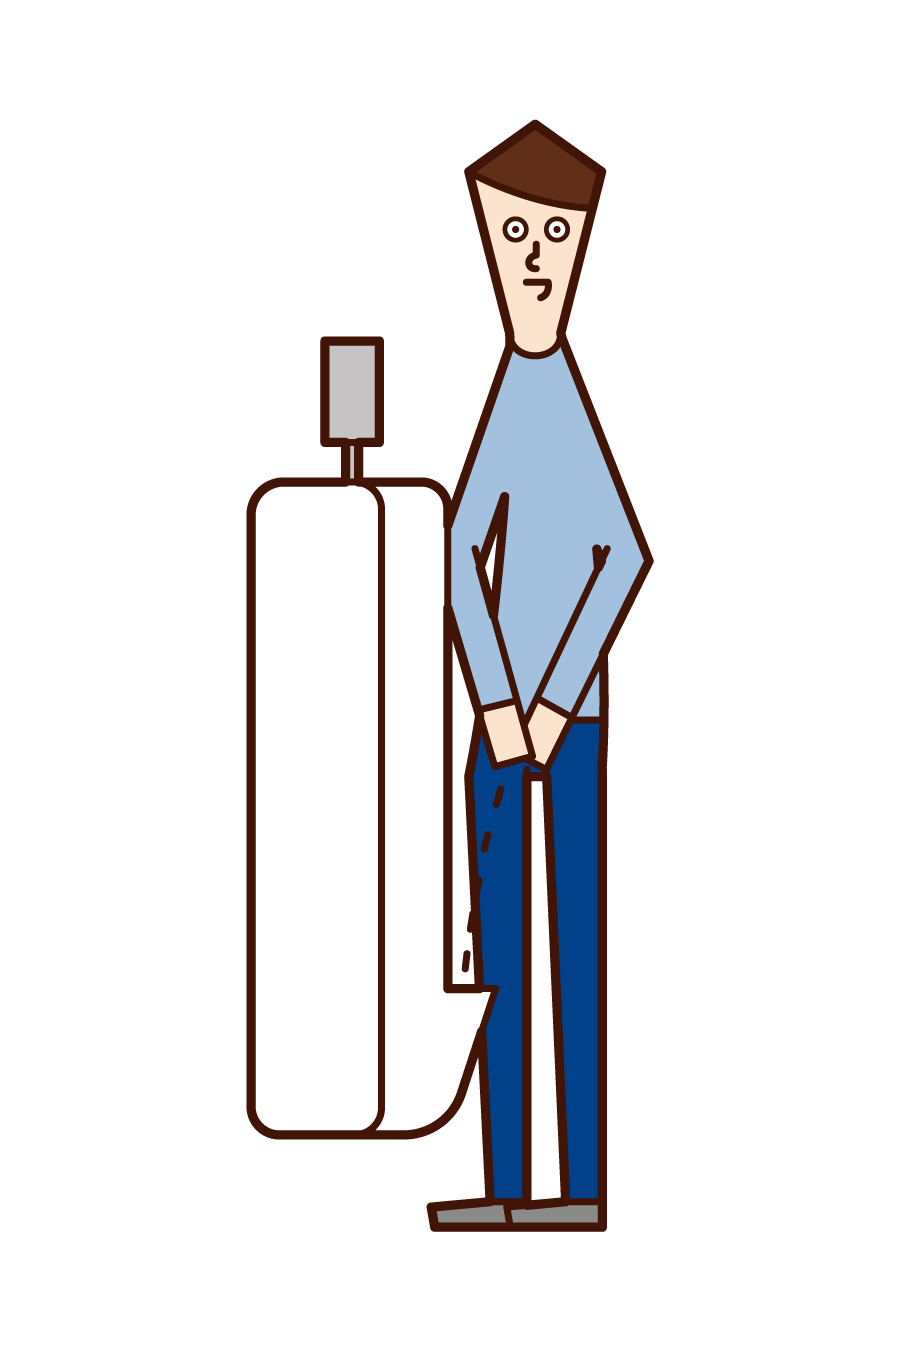 Illustration of a man who uses a toilet